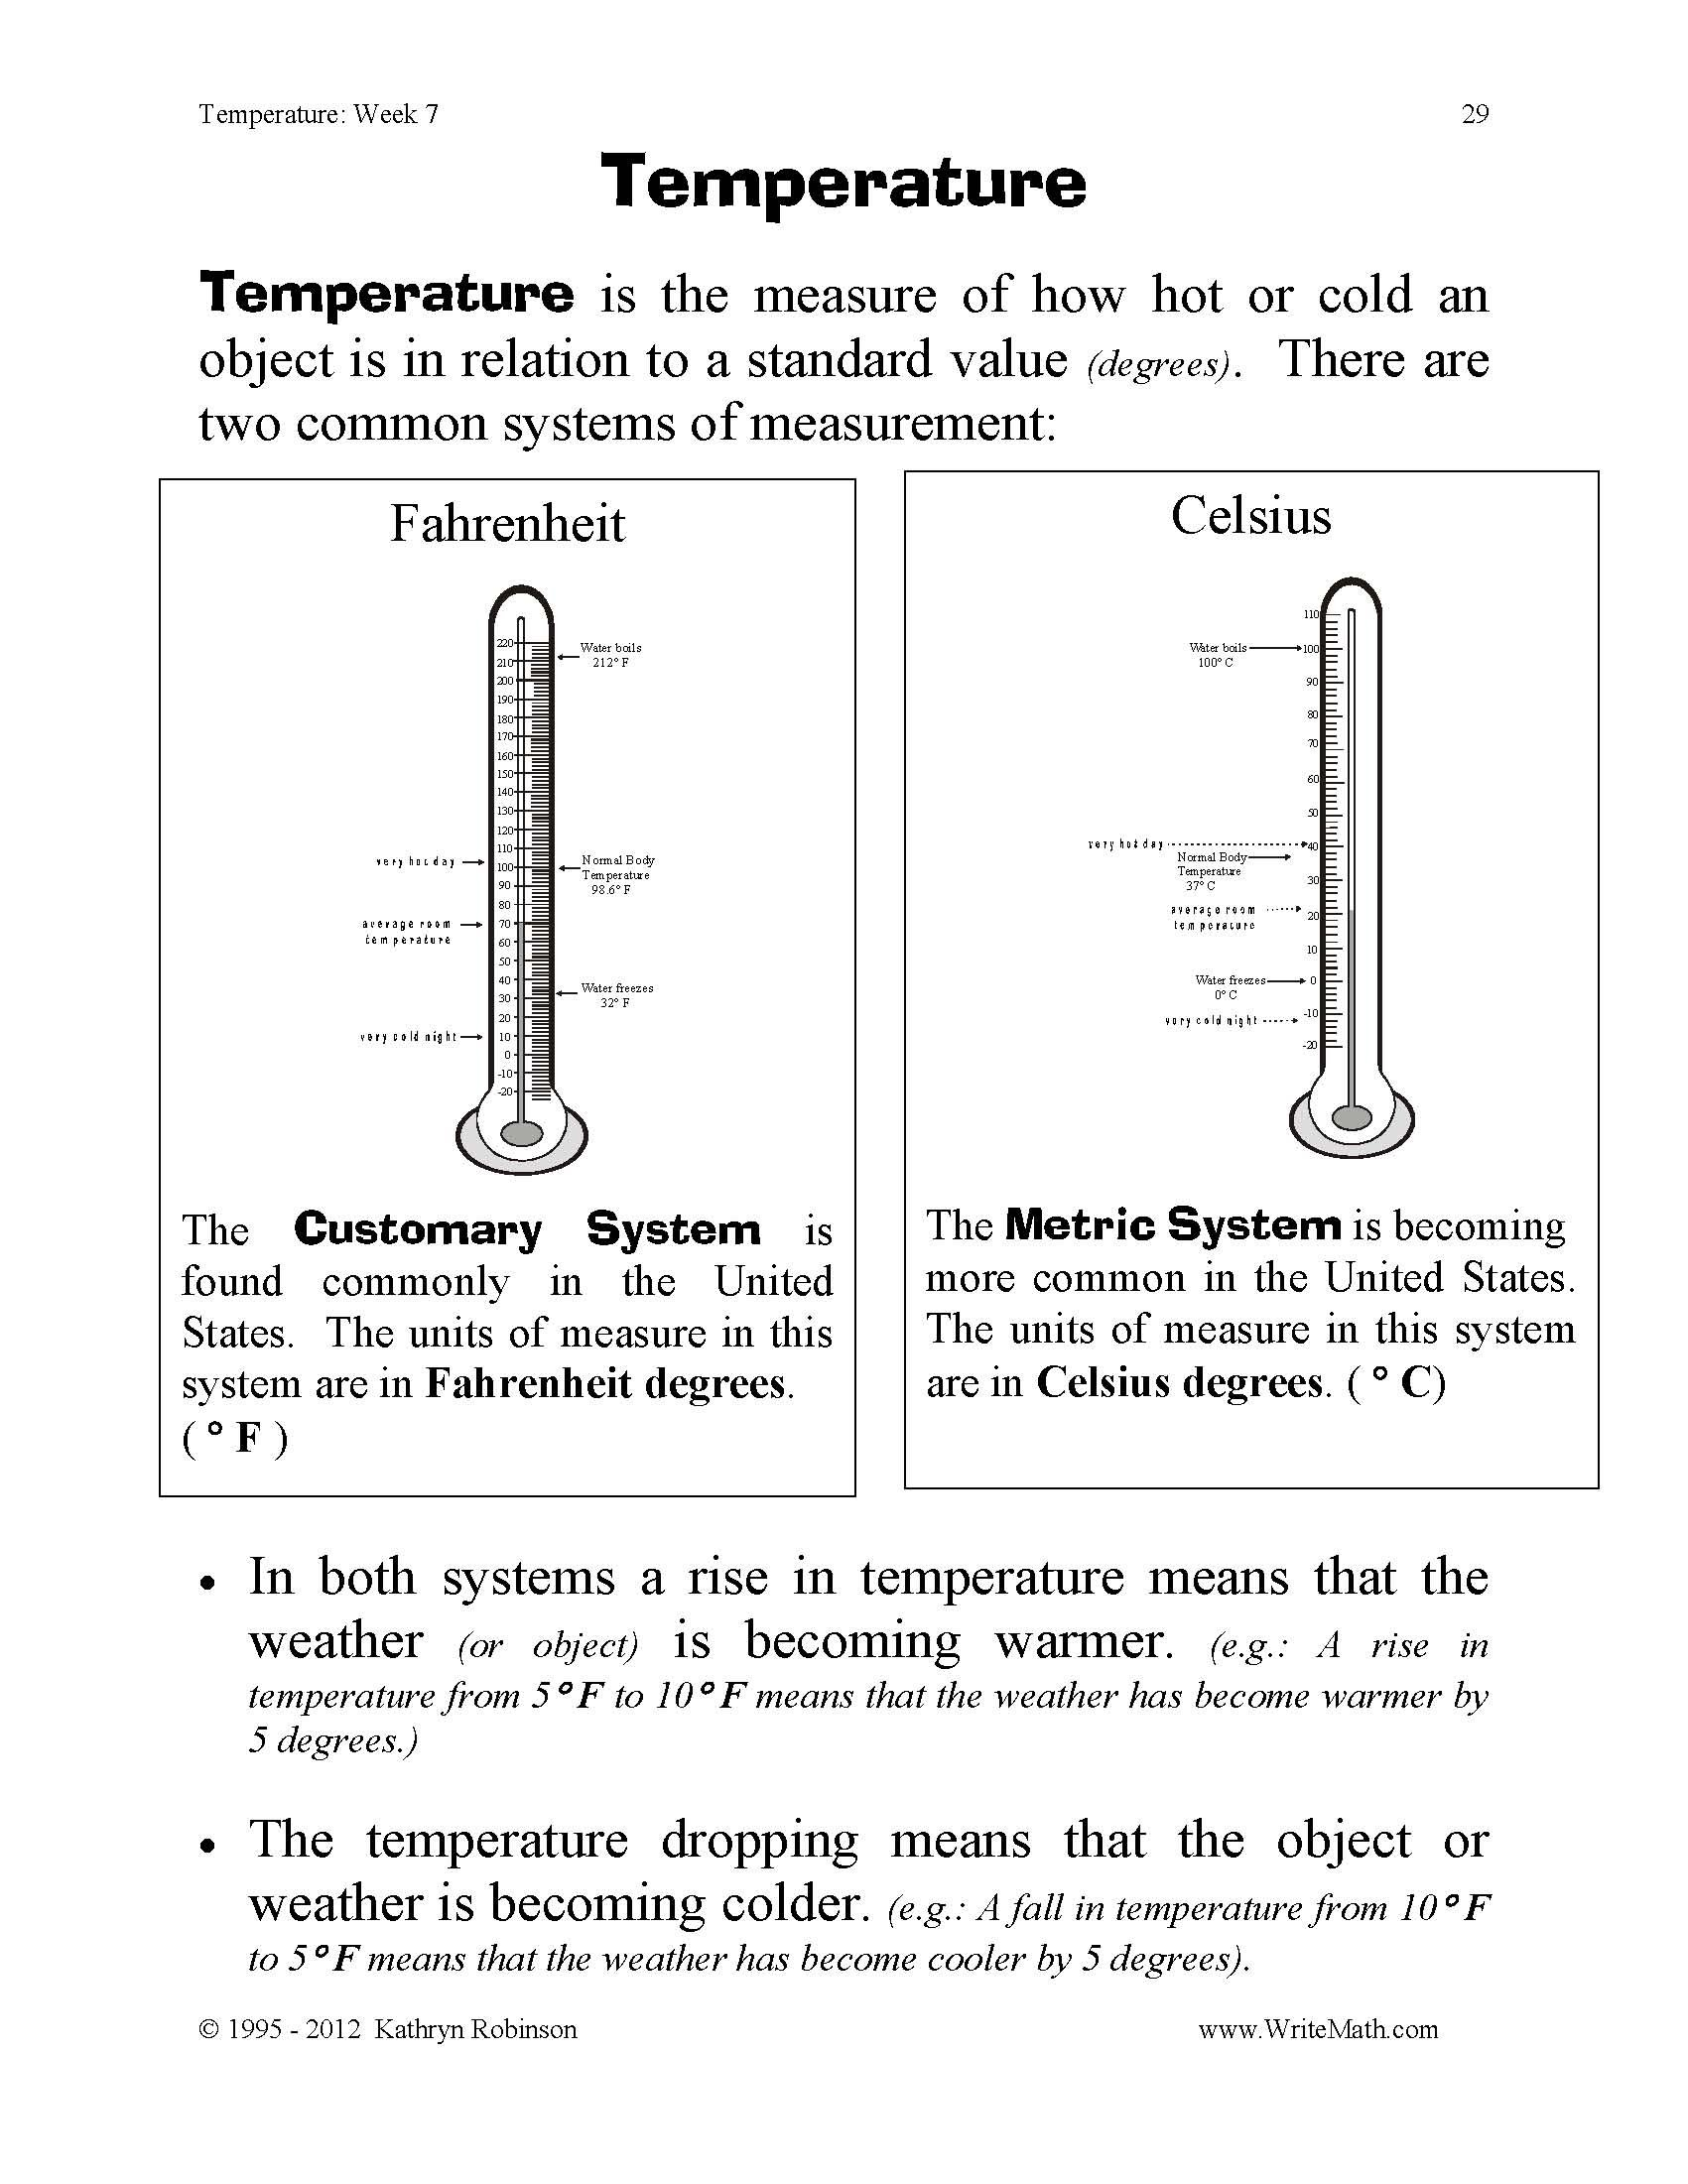 Worksheets Conversion Of Temperature Printable Worksheets Grade 5 temperature worksheets 3rd 4th 5th grade math just turn and share volume 12 kathryn robinson 9781931970068 amazon com b